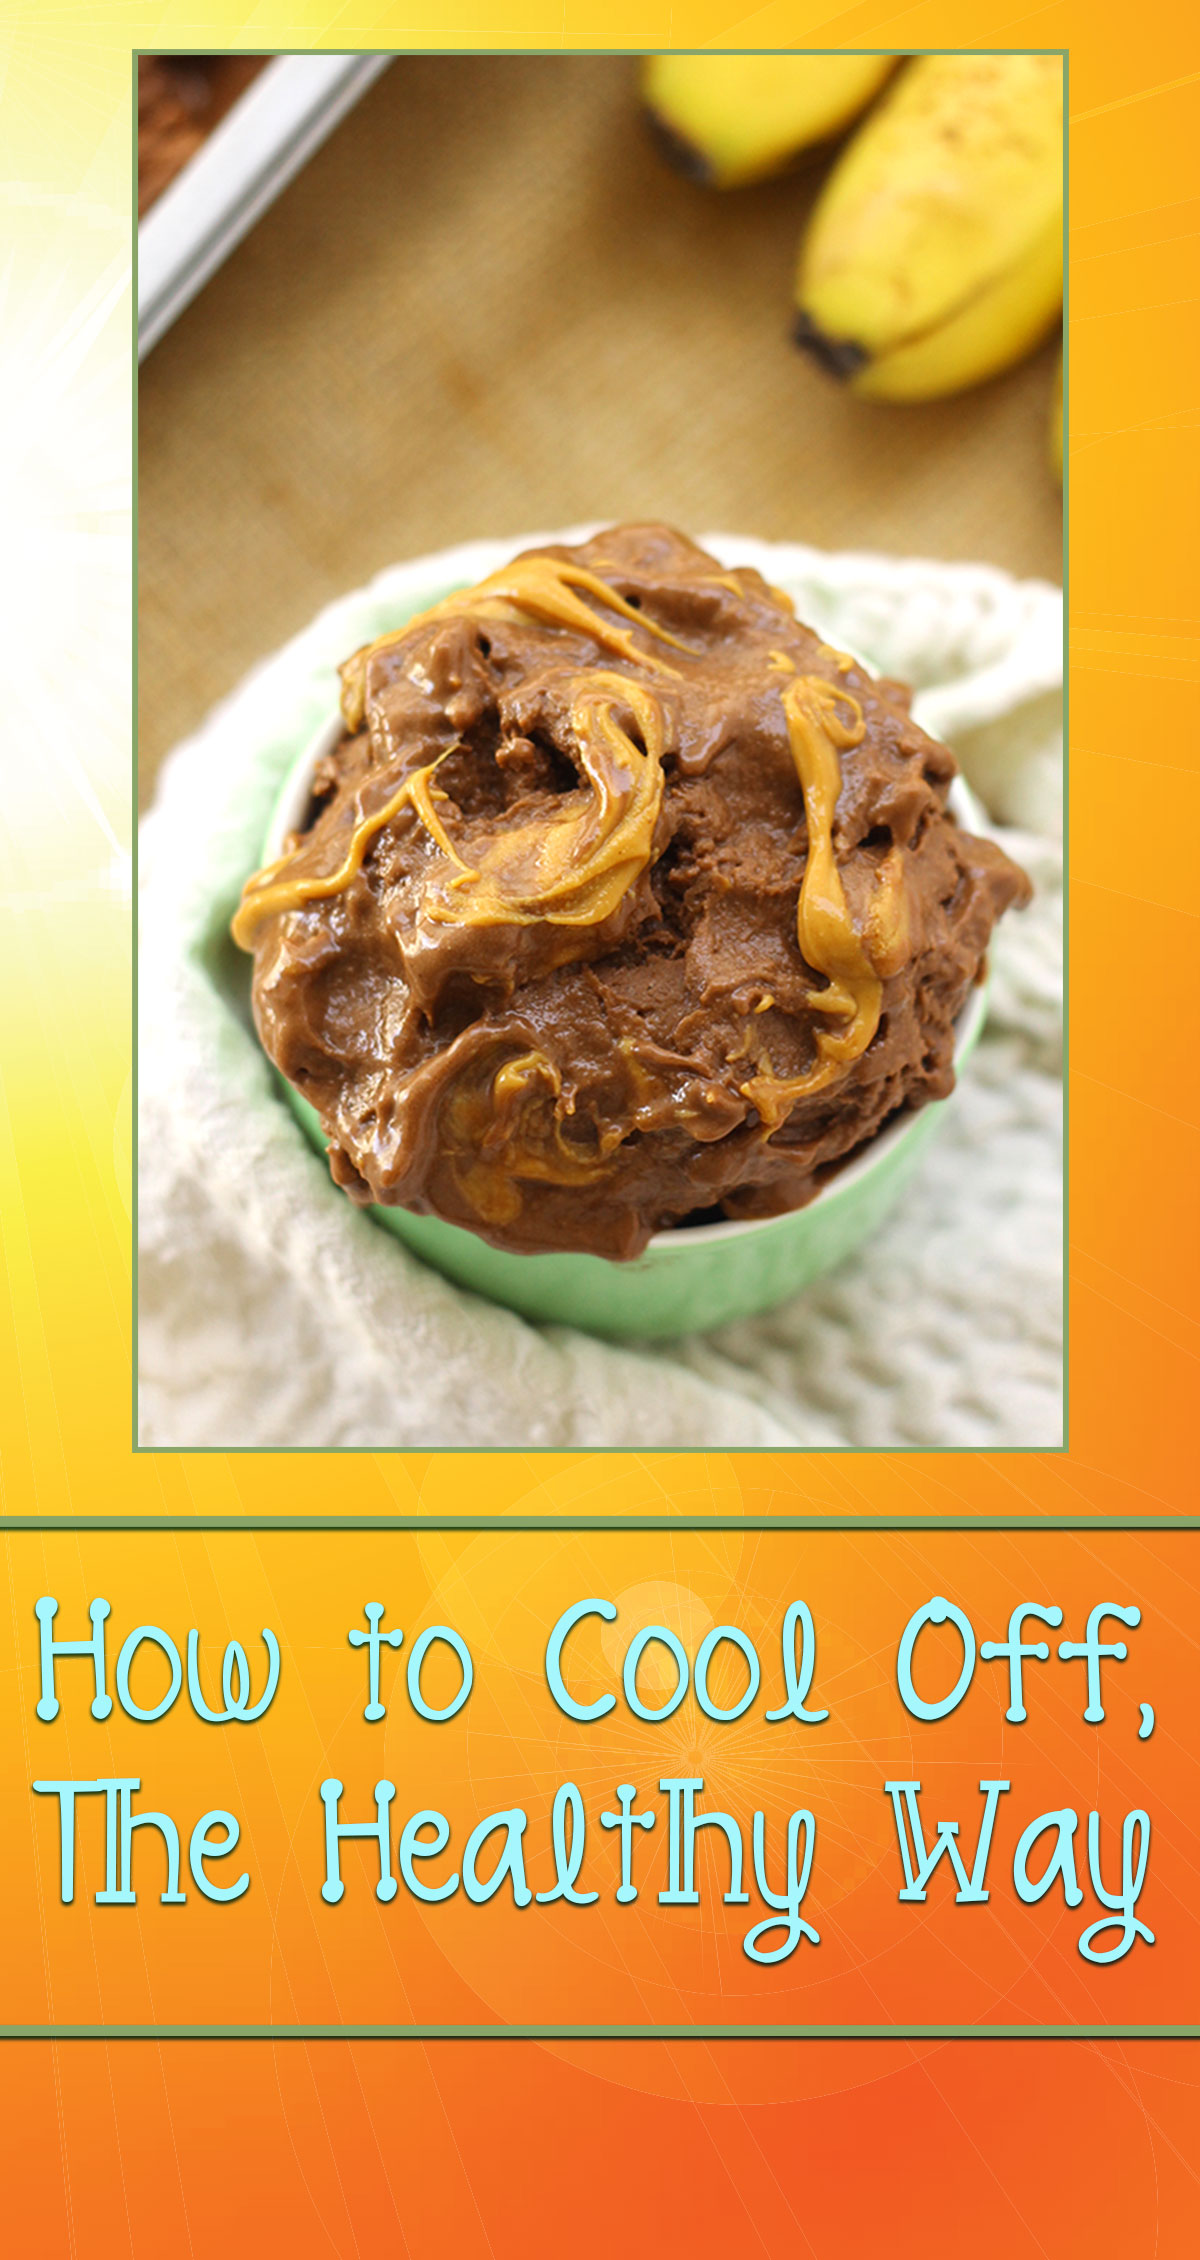 How to Cool Off, the Healthy Way Pin